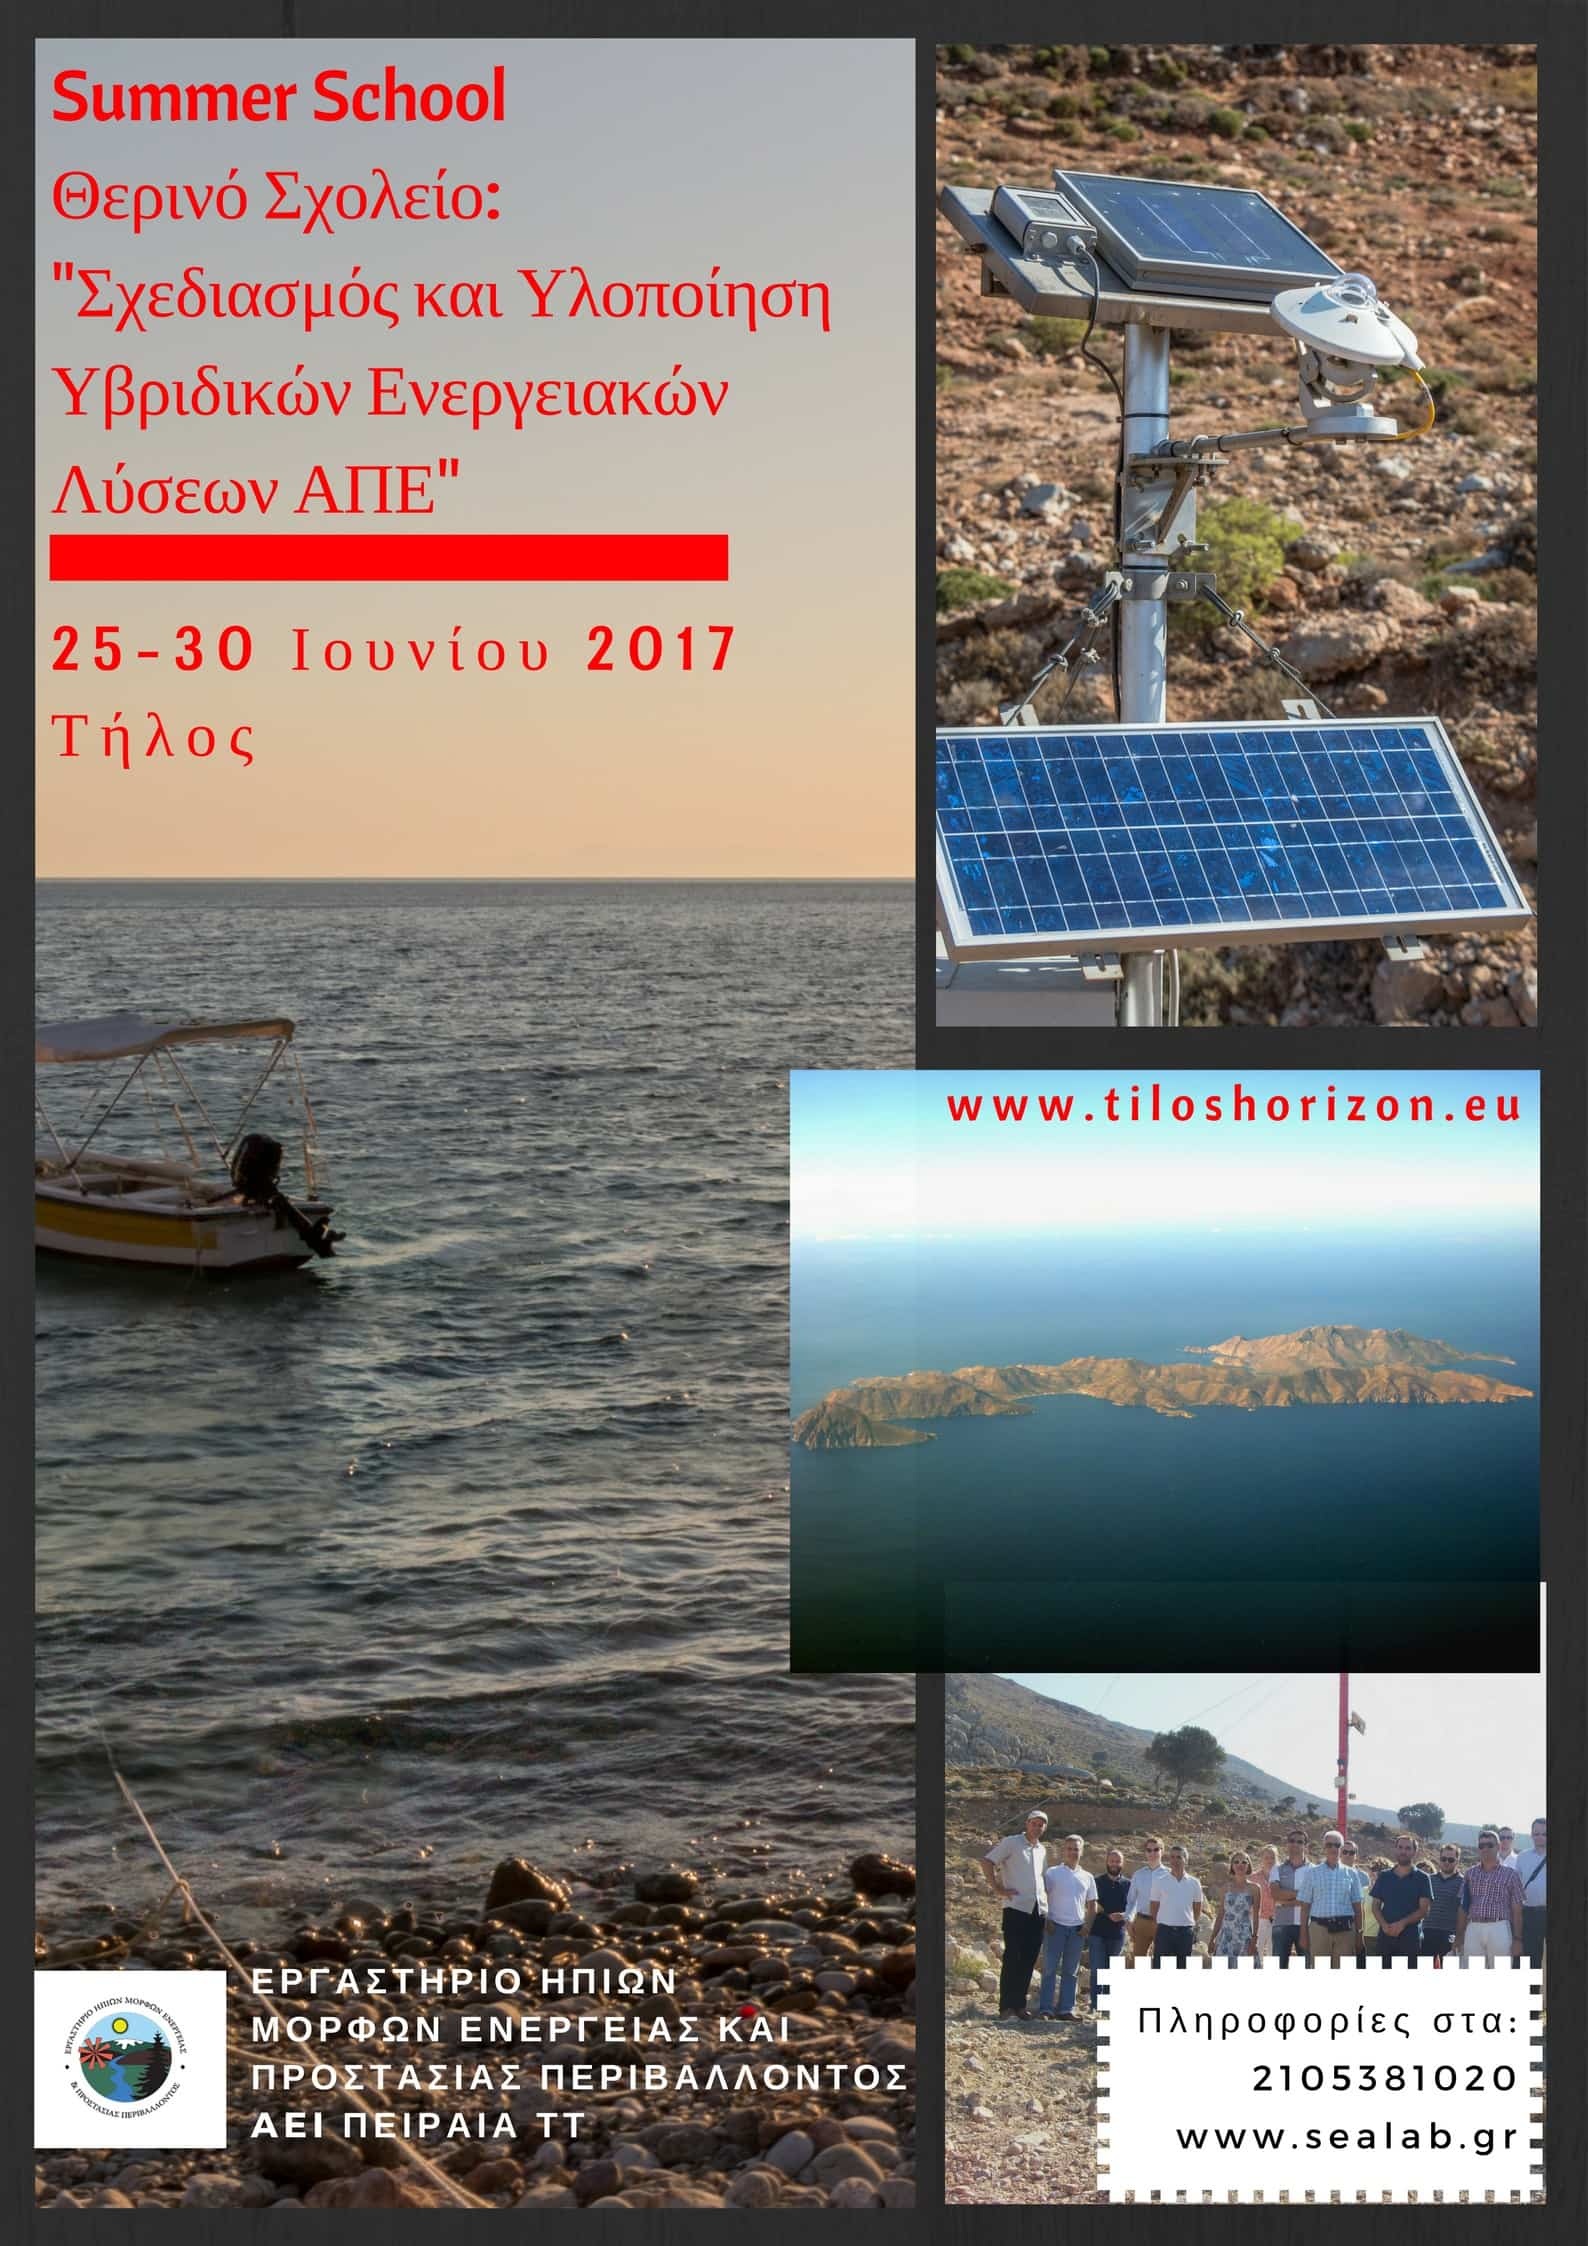 Summer School 2017 – Tilos Horizon